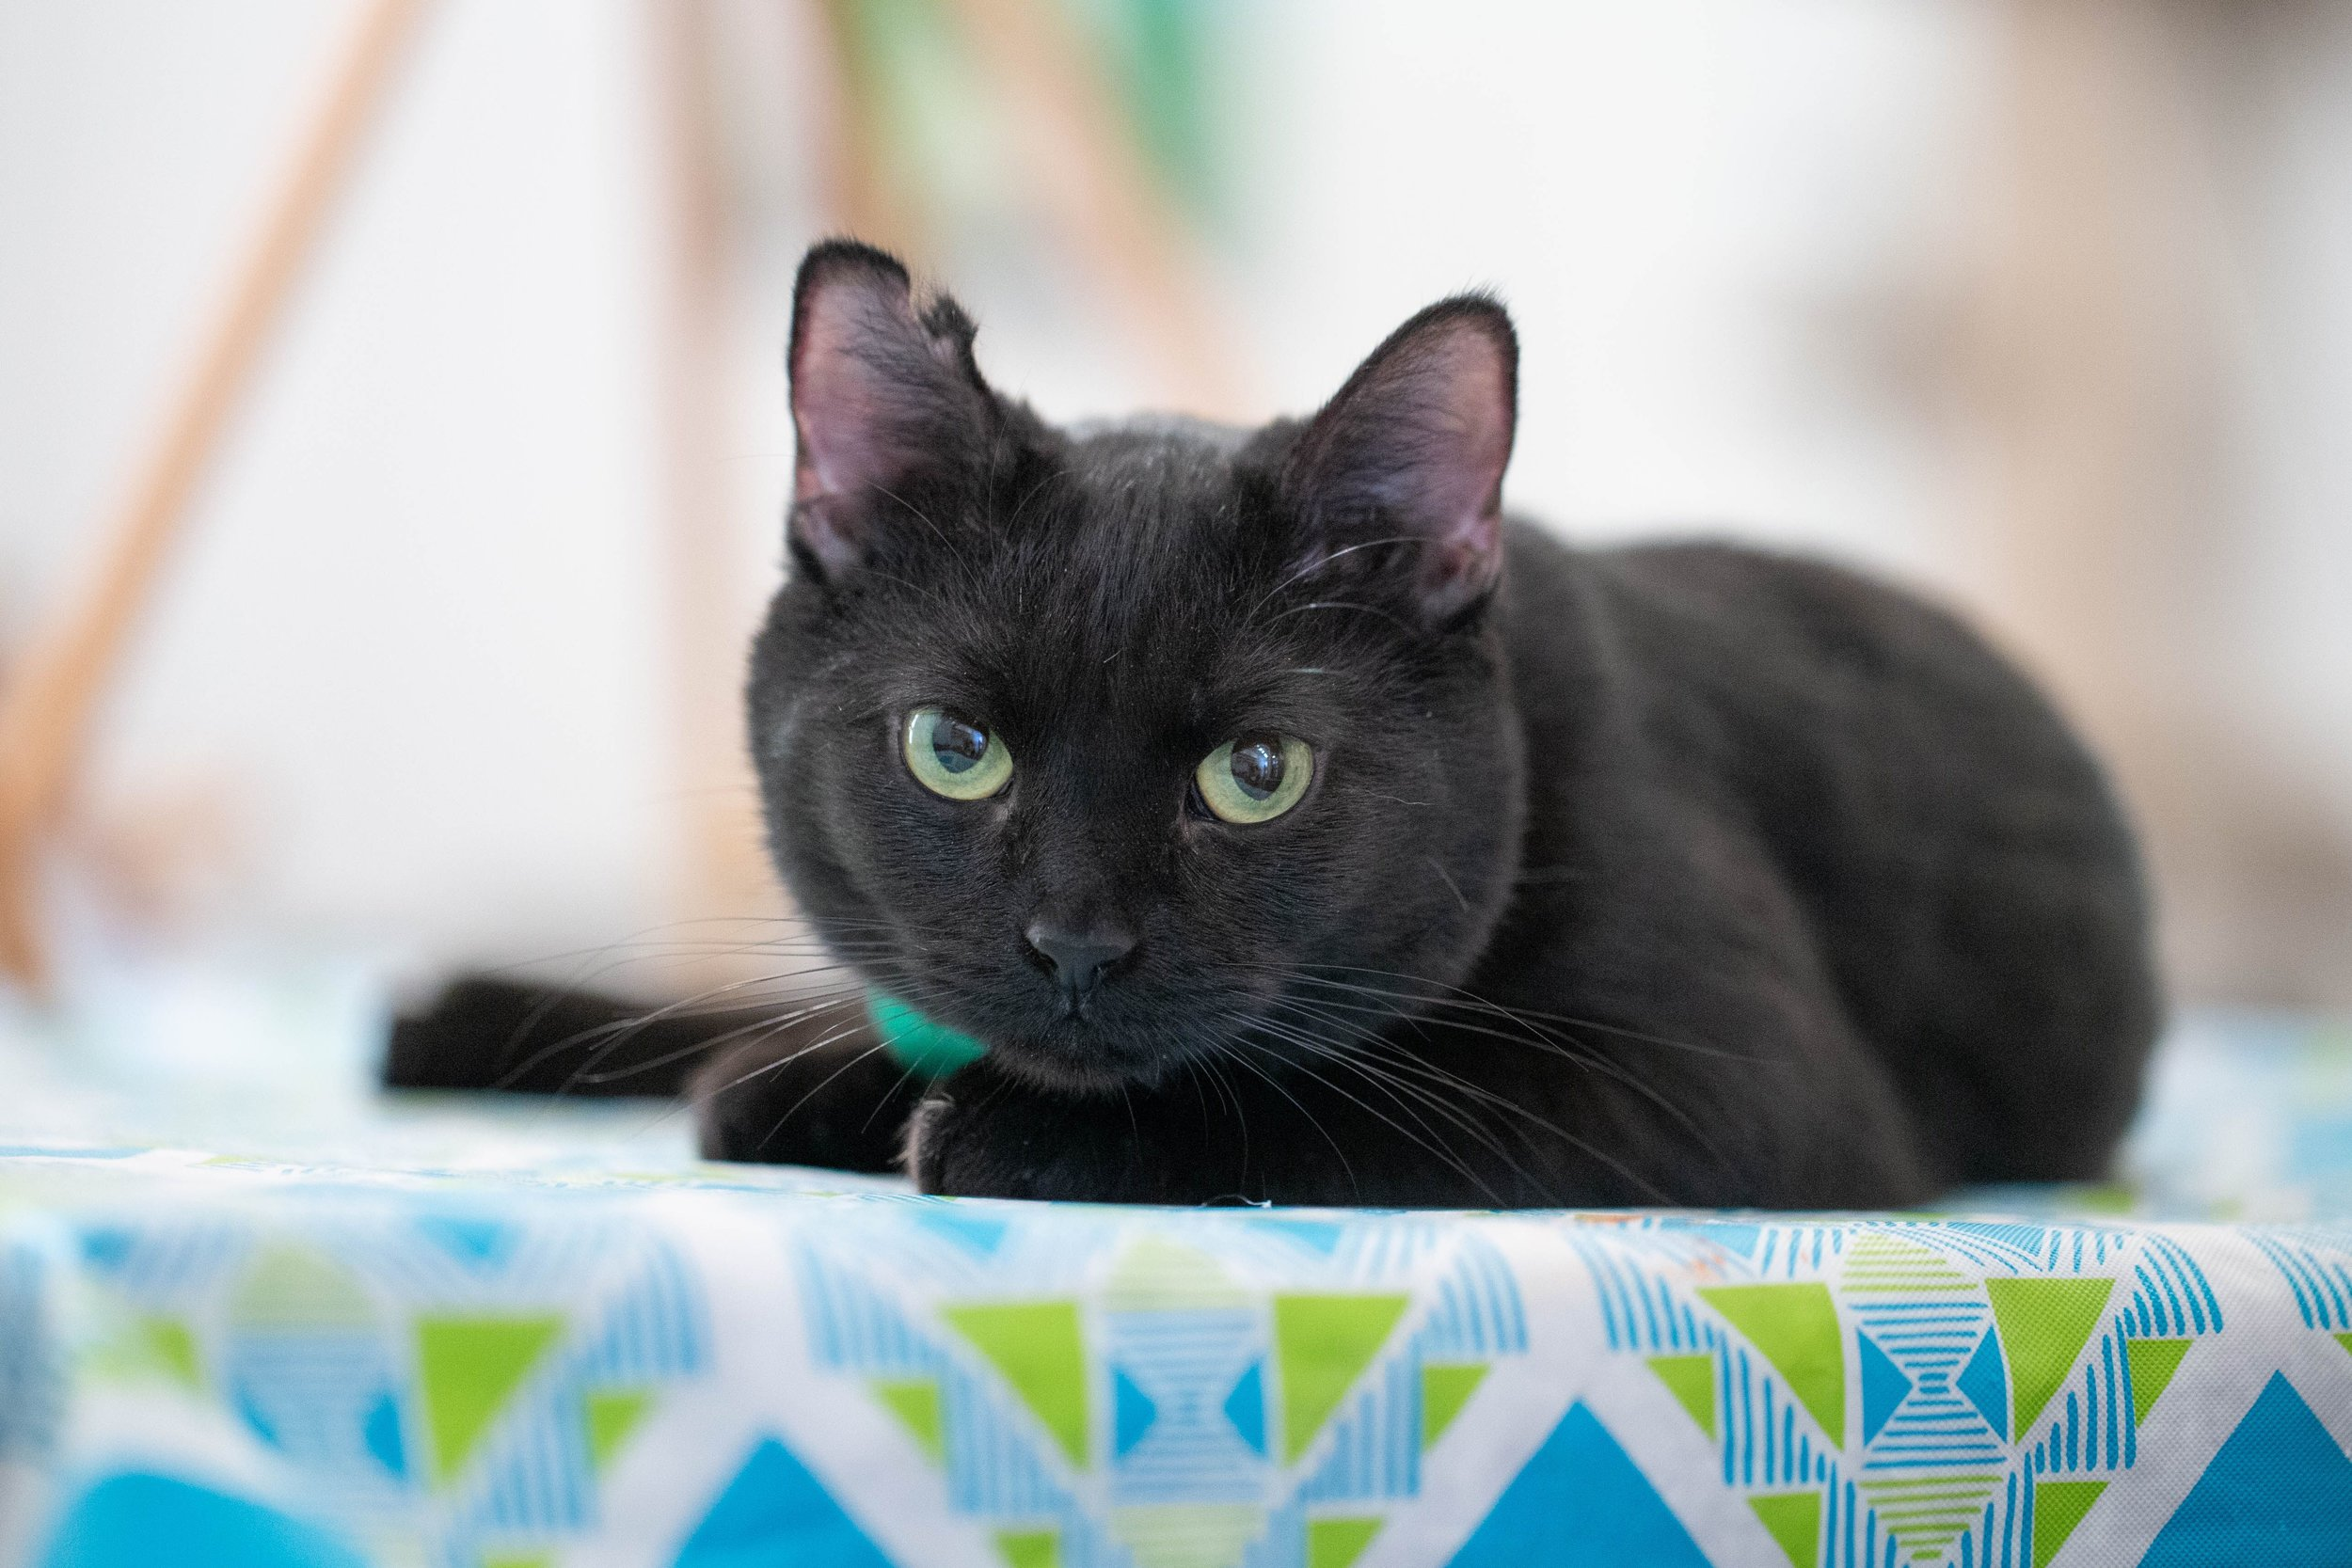 """Purrs & Palettes - Painting with cats! This is an all ages and artistic levels paint night event with guided instructions to paint a cat themed canvas in our cat lounge. """"Dry time"""" is spent mingling with the cats in the space.For class availability and sign up, click here."""